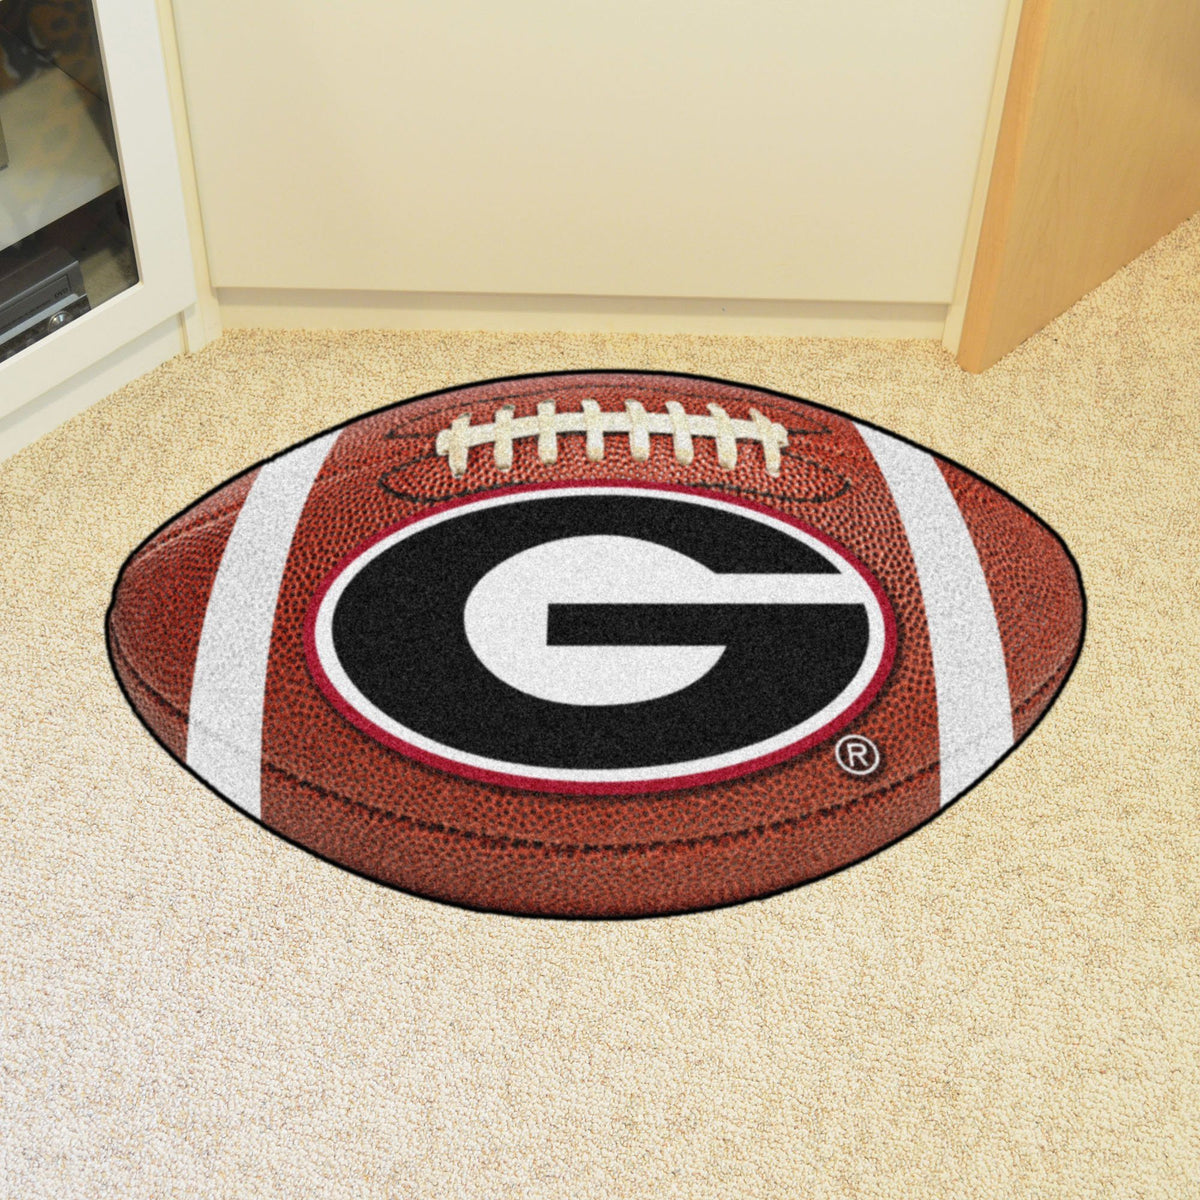 Collegiate - Football Mat: A - K Collegiate Mats, Rectangular Mats, Football Mat, Collegiate, Home Fan Mats Georgia